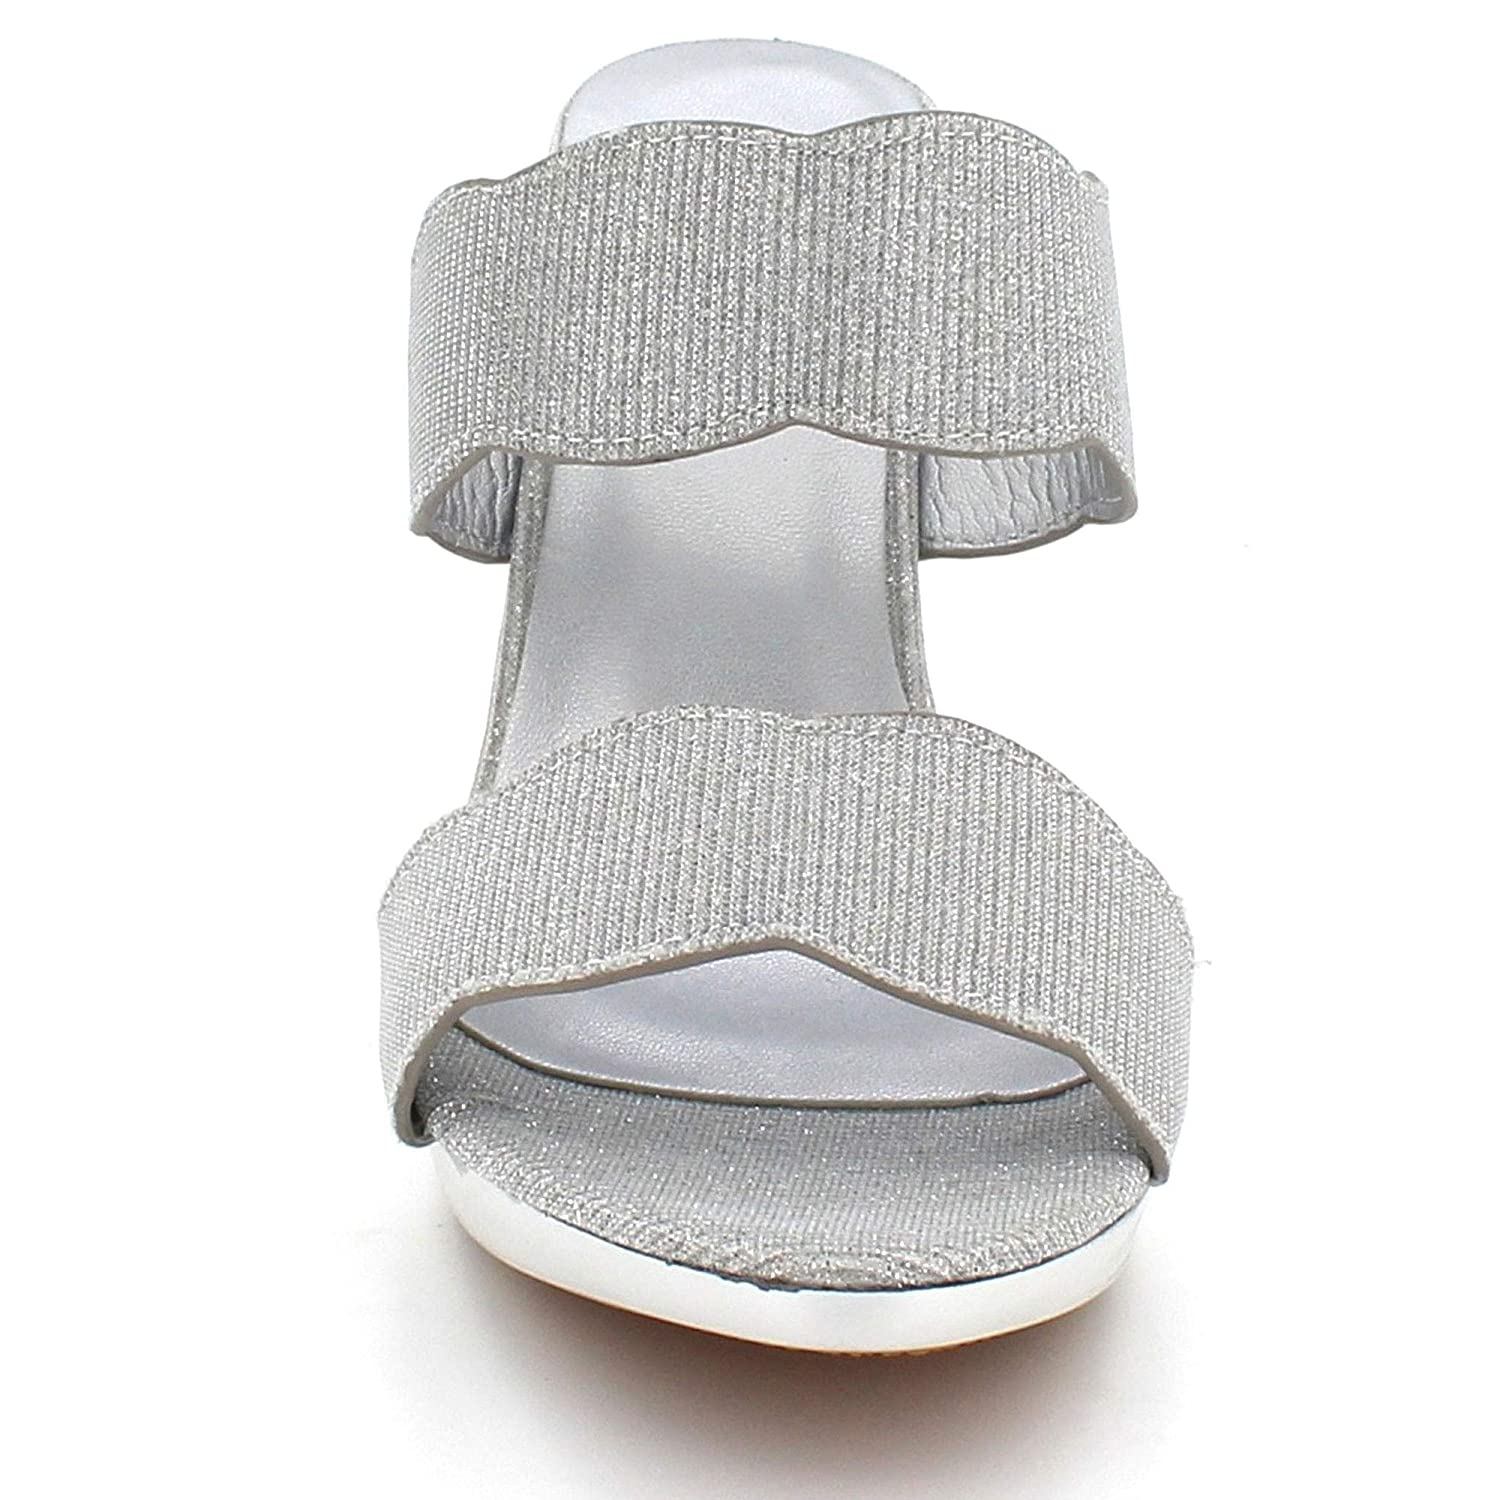 Womens Ladies Dazzling Open Toe Evening Wedding Party Bridal High Heel Slip on Sandals Shoes Size